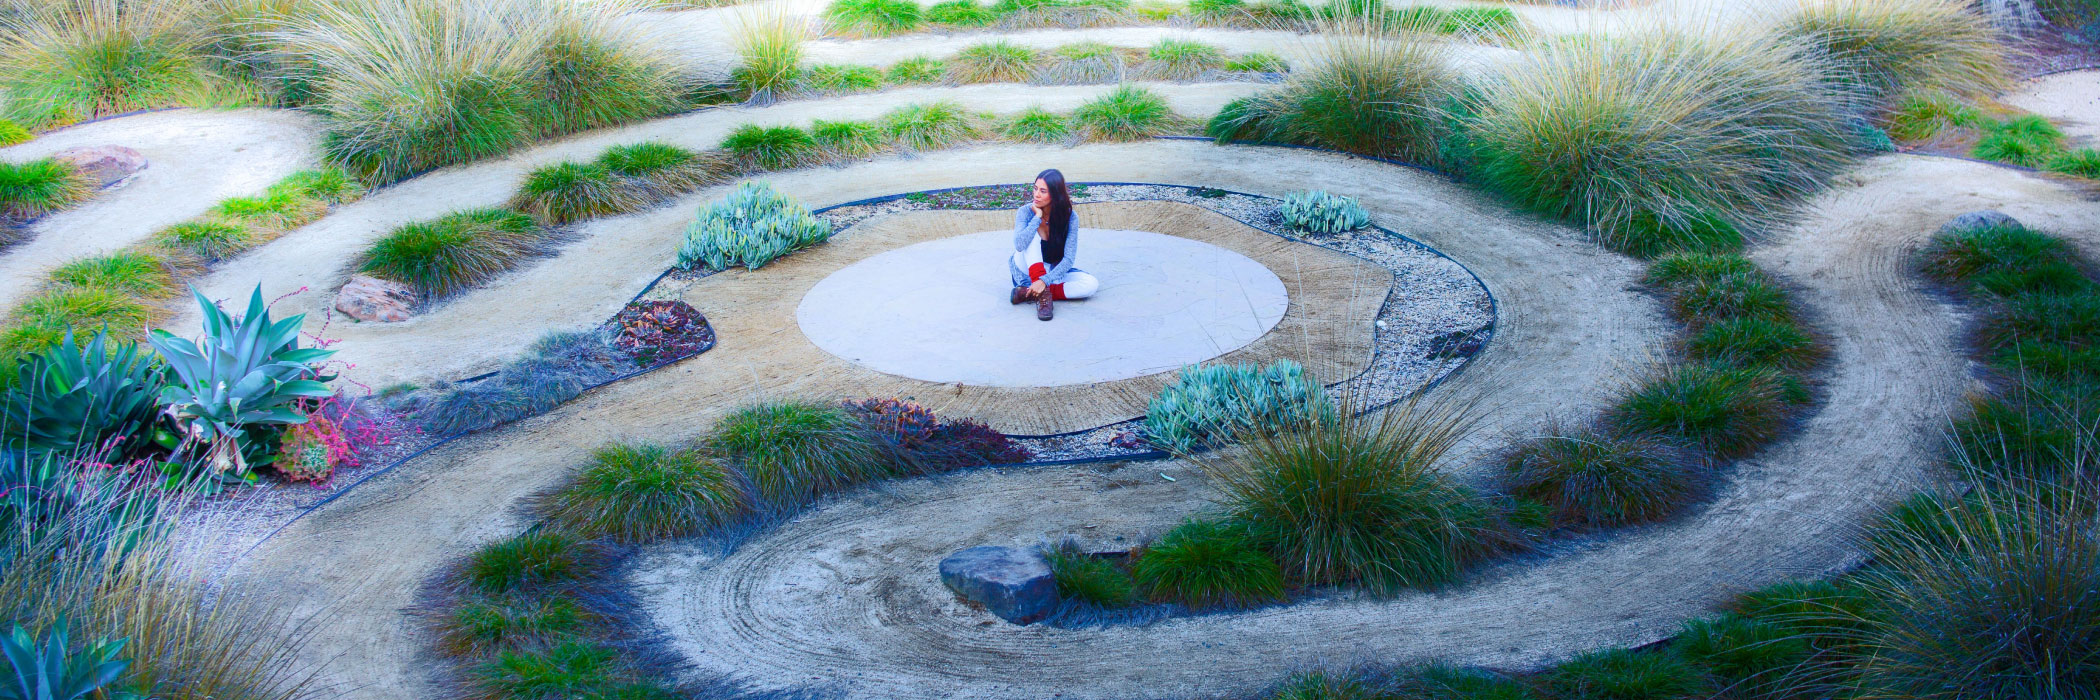 Woman sitting in the middle of a labyrinth of bushes